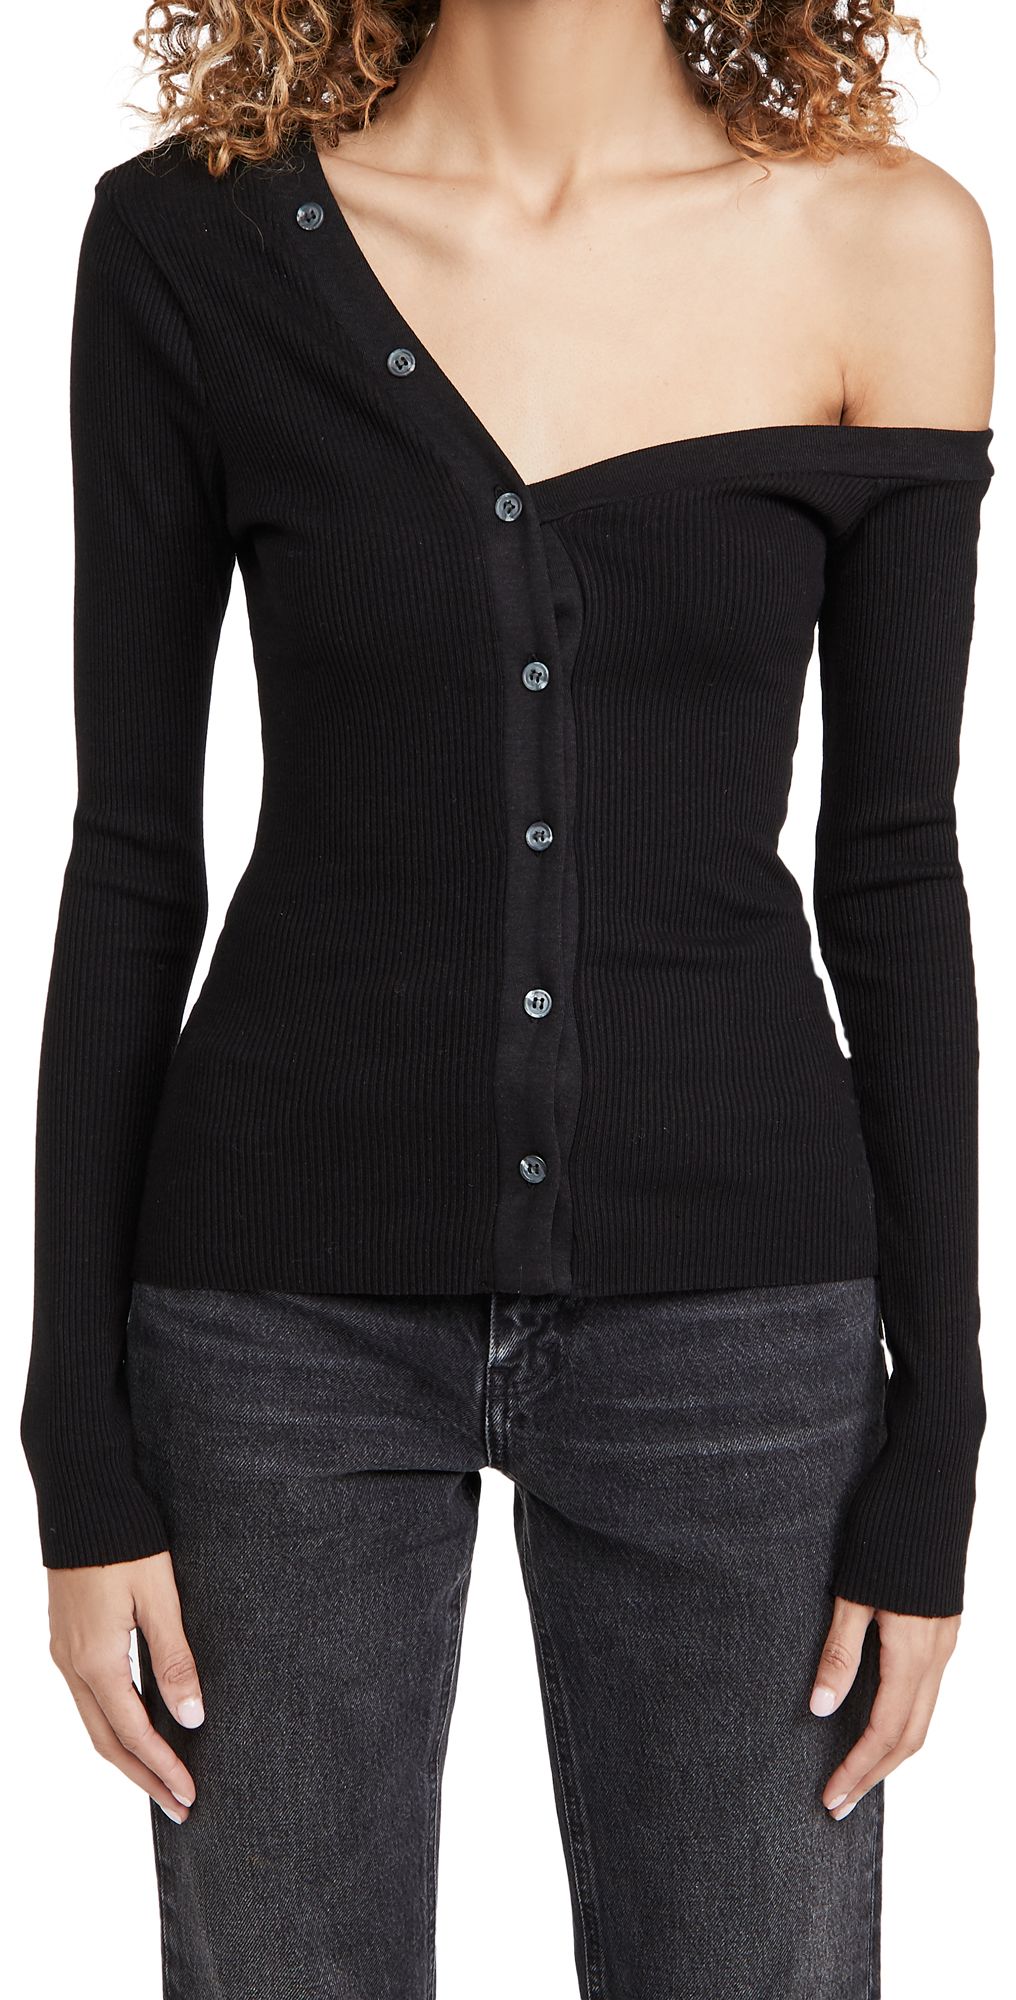 The Range Mass Rib Tilted Button Top